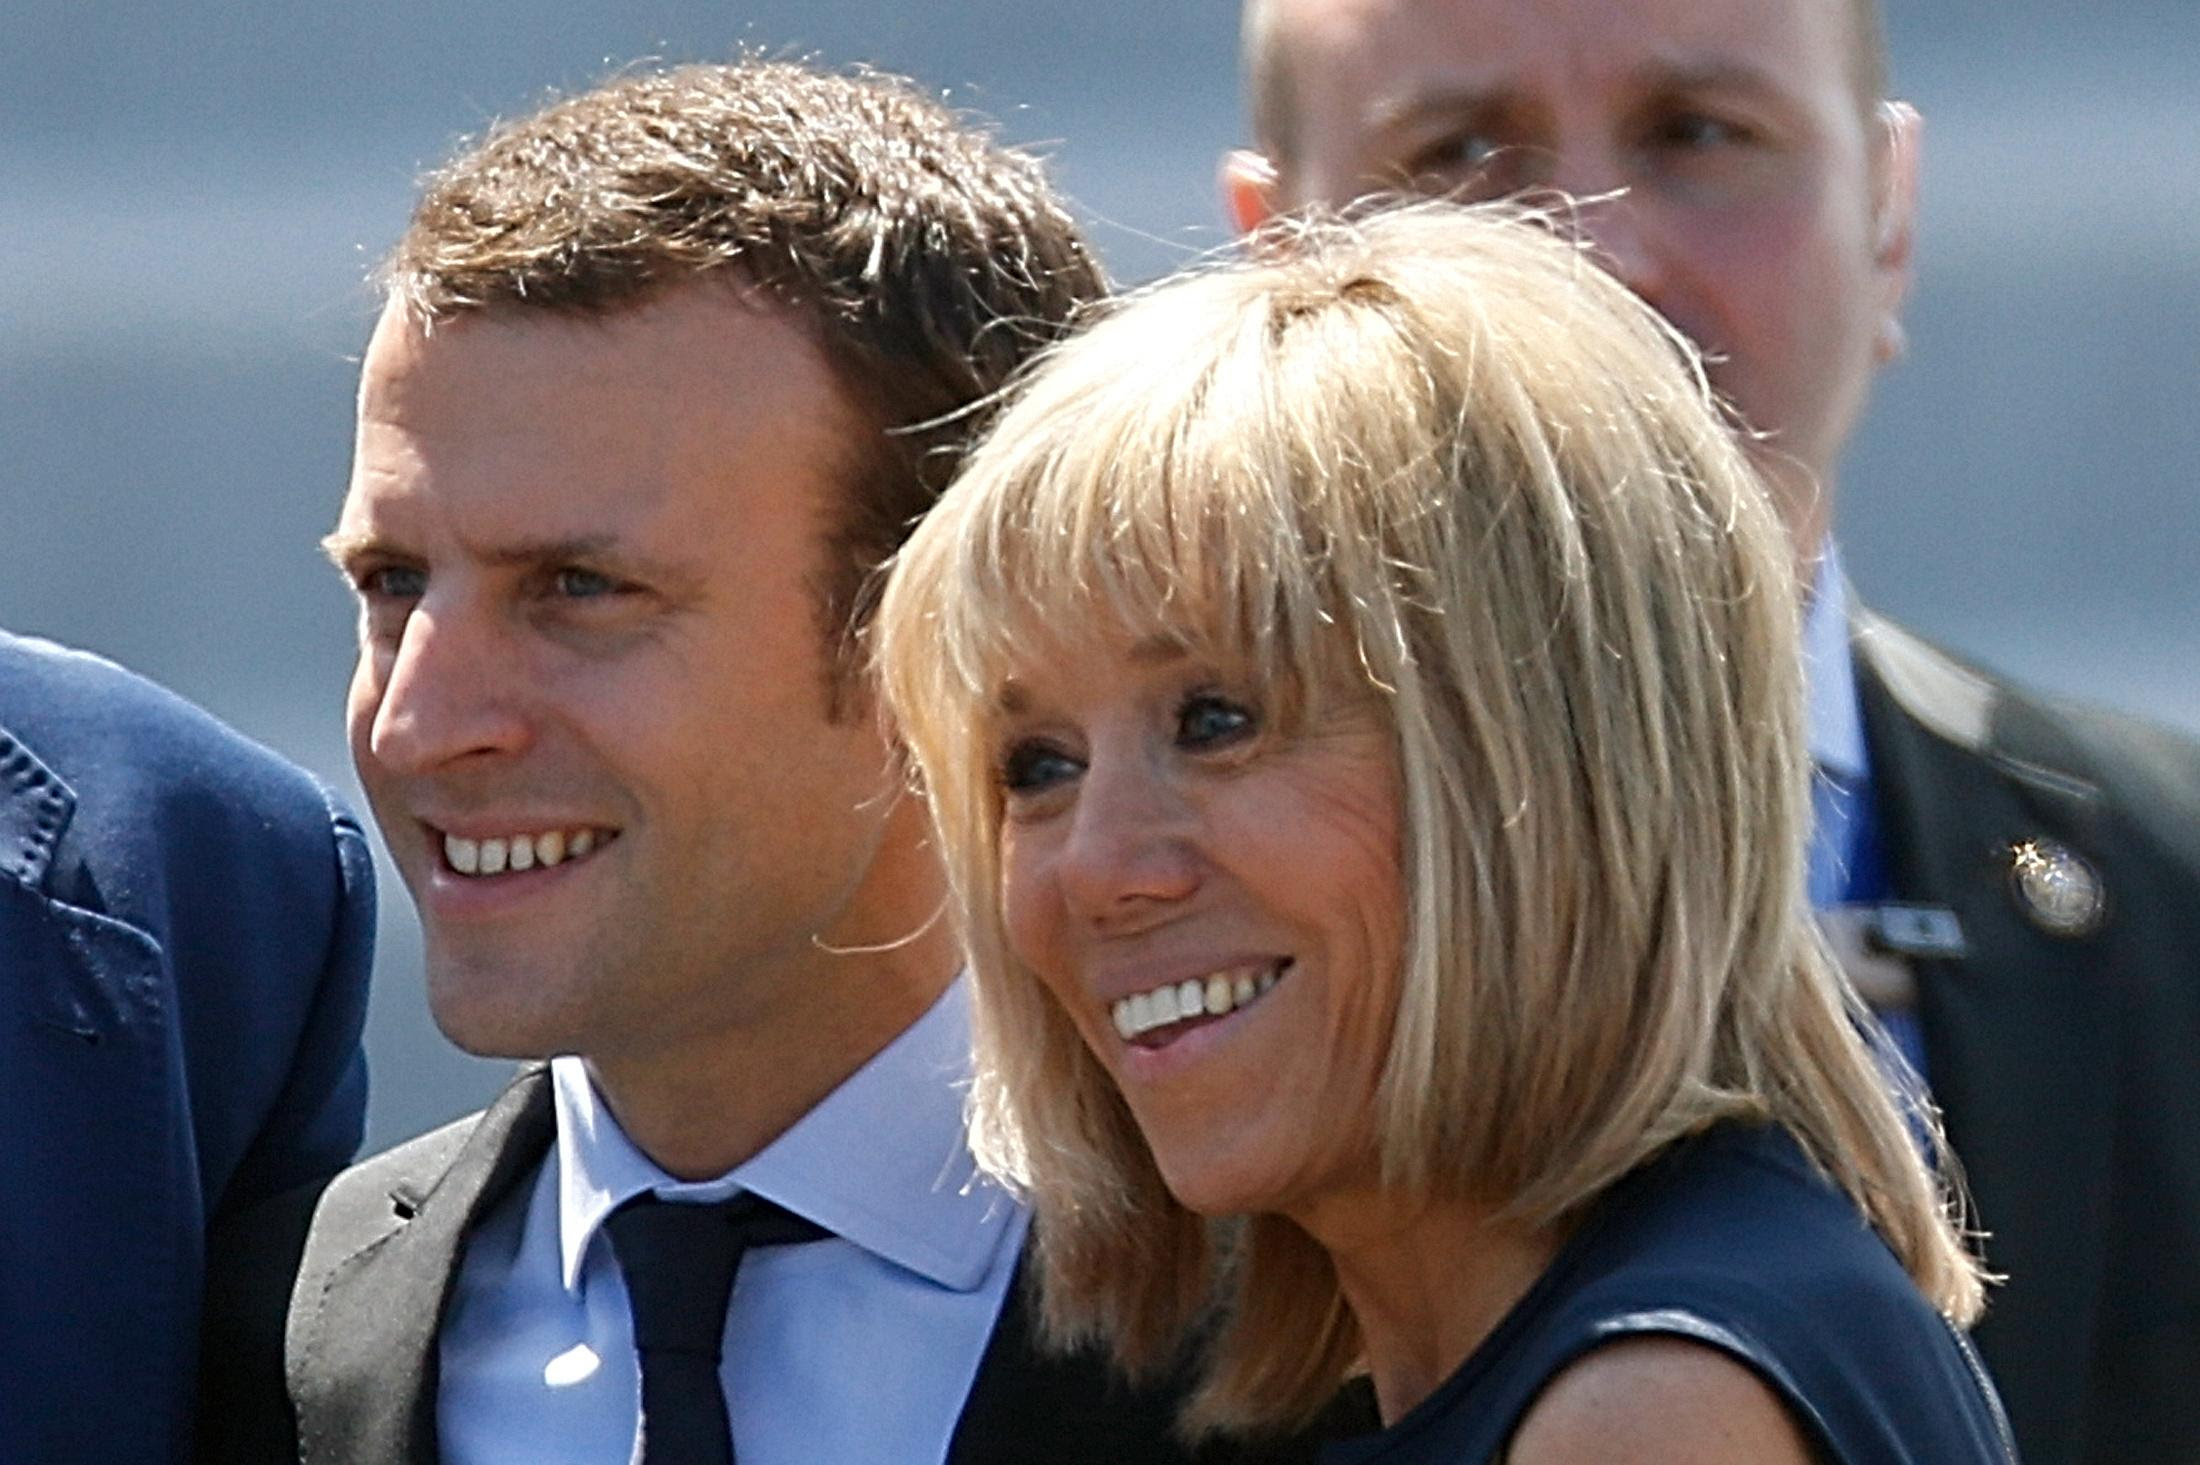 Emmanuel macron wife 2021 : Who Is Brigitte Macron? French Politician's Wife Used To ...